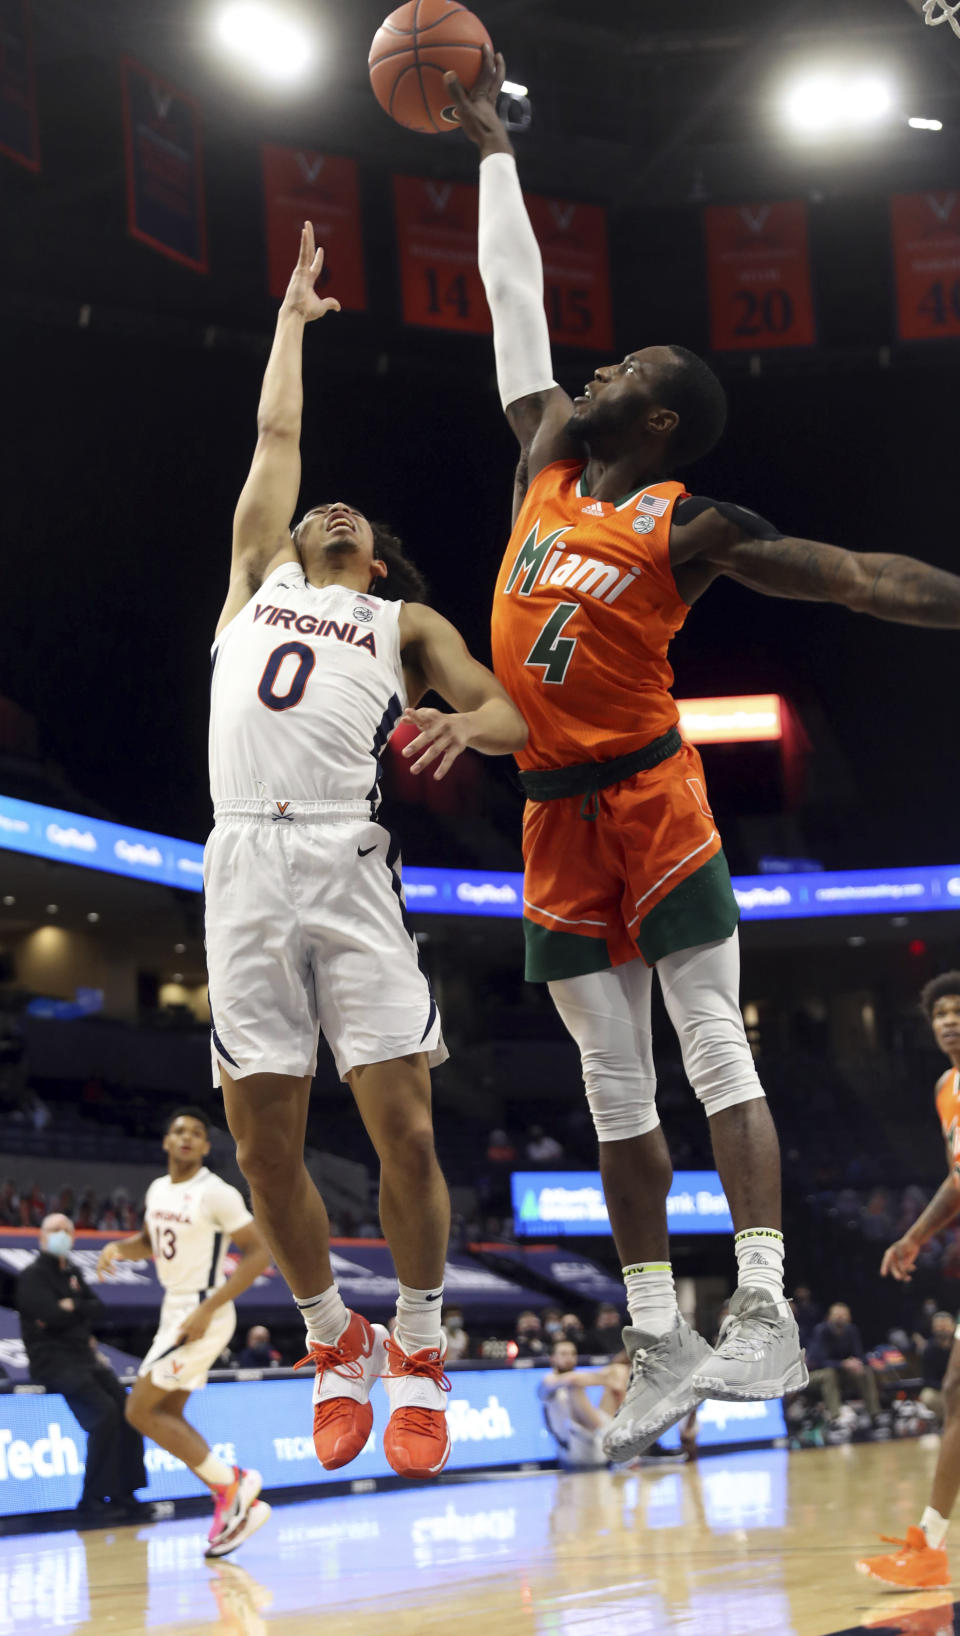 Miami guard Elijah Olaniyi (4) blocks the shot of Virginia guard Kihei Clark (0) during an NCAA college basketball game Monday in Charlottesville, Va. (Andrew Shurtleff/The Daily Progress via AP, Pool)